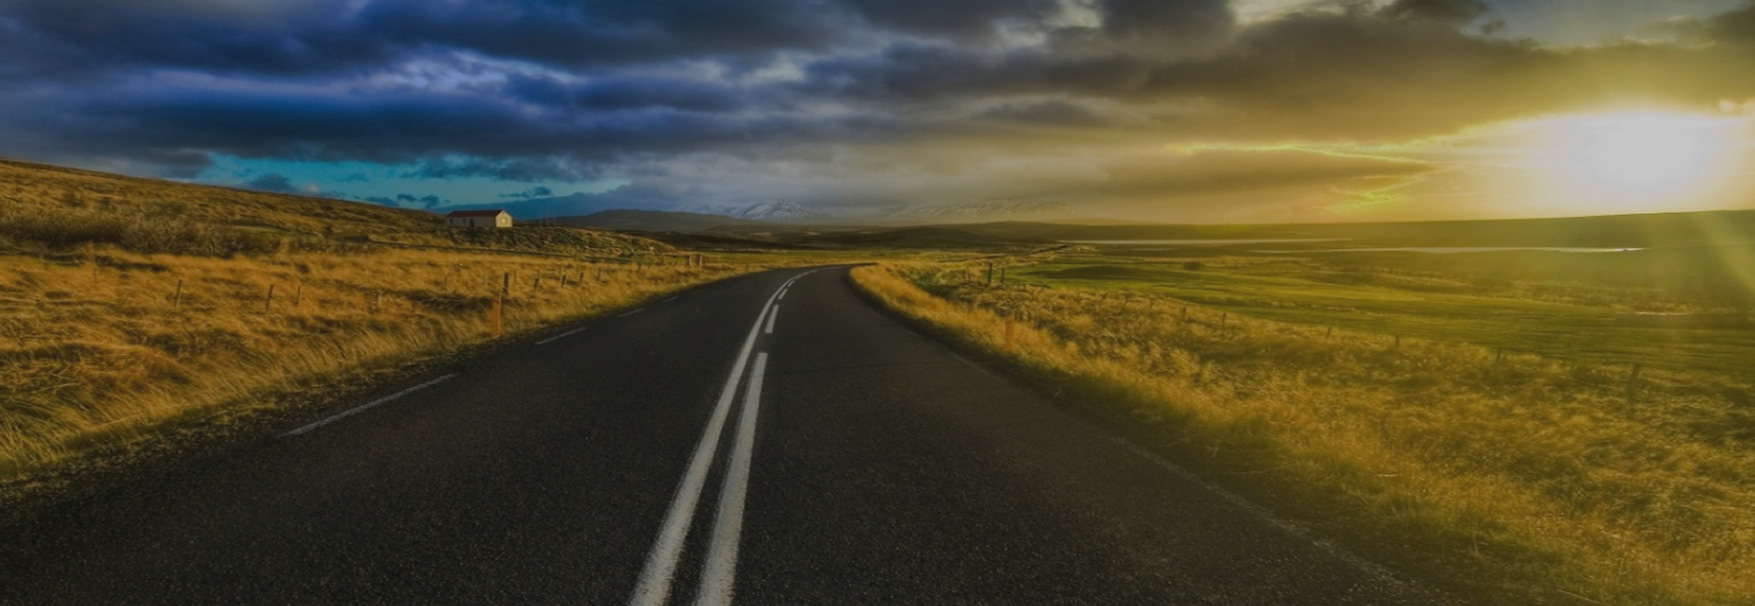 openroad